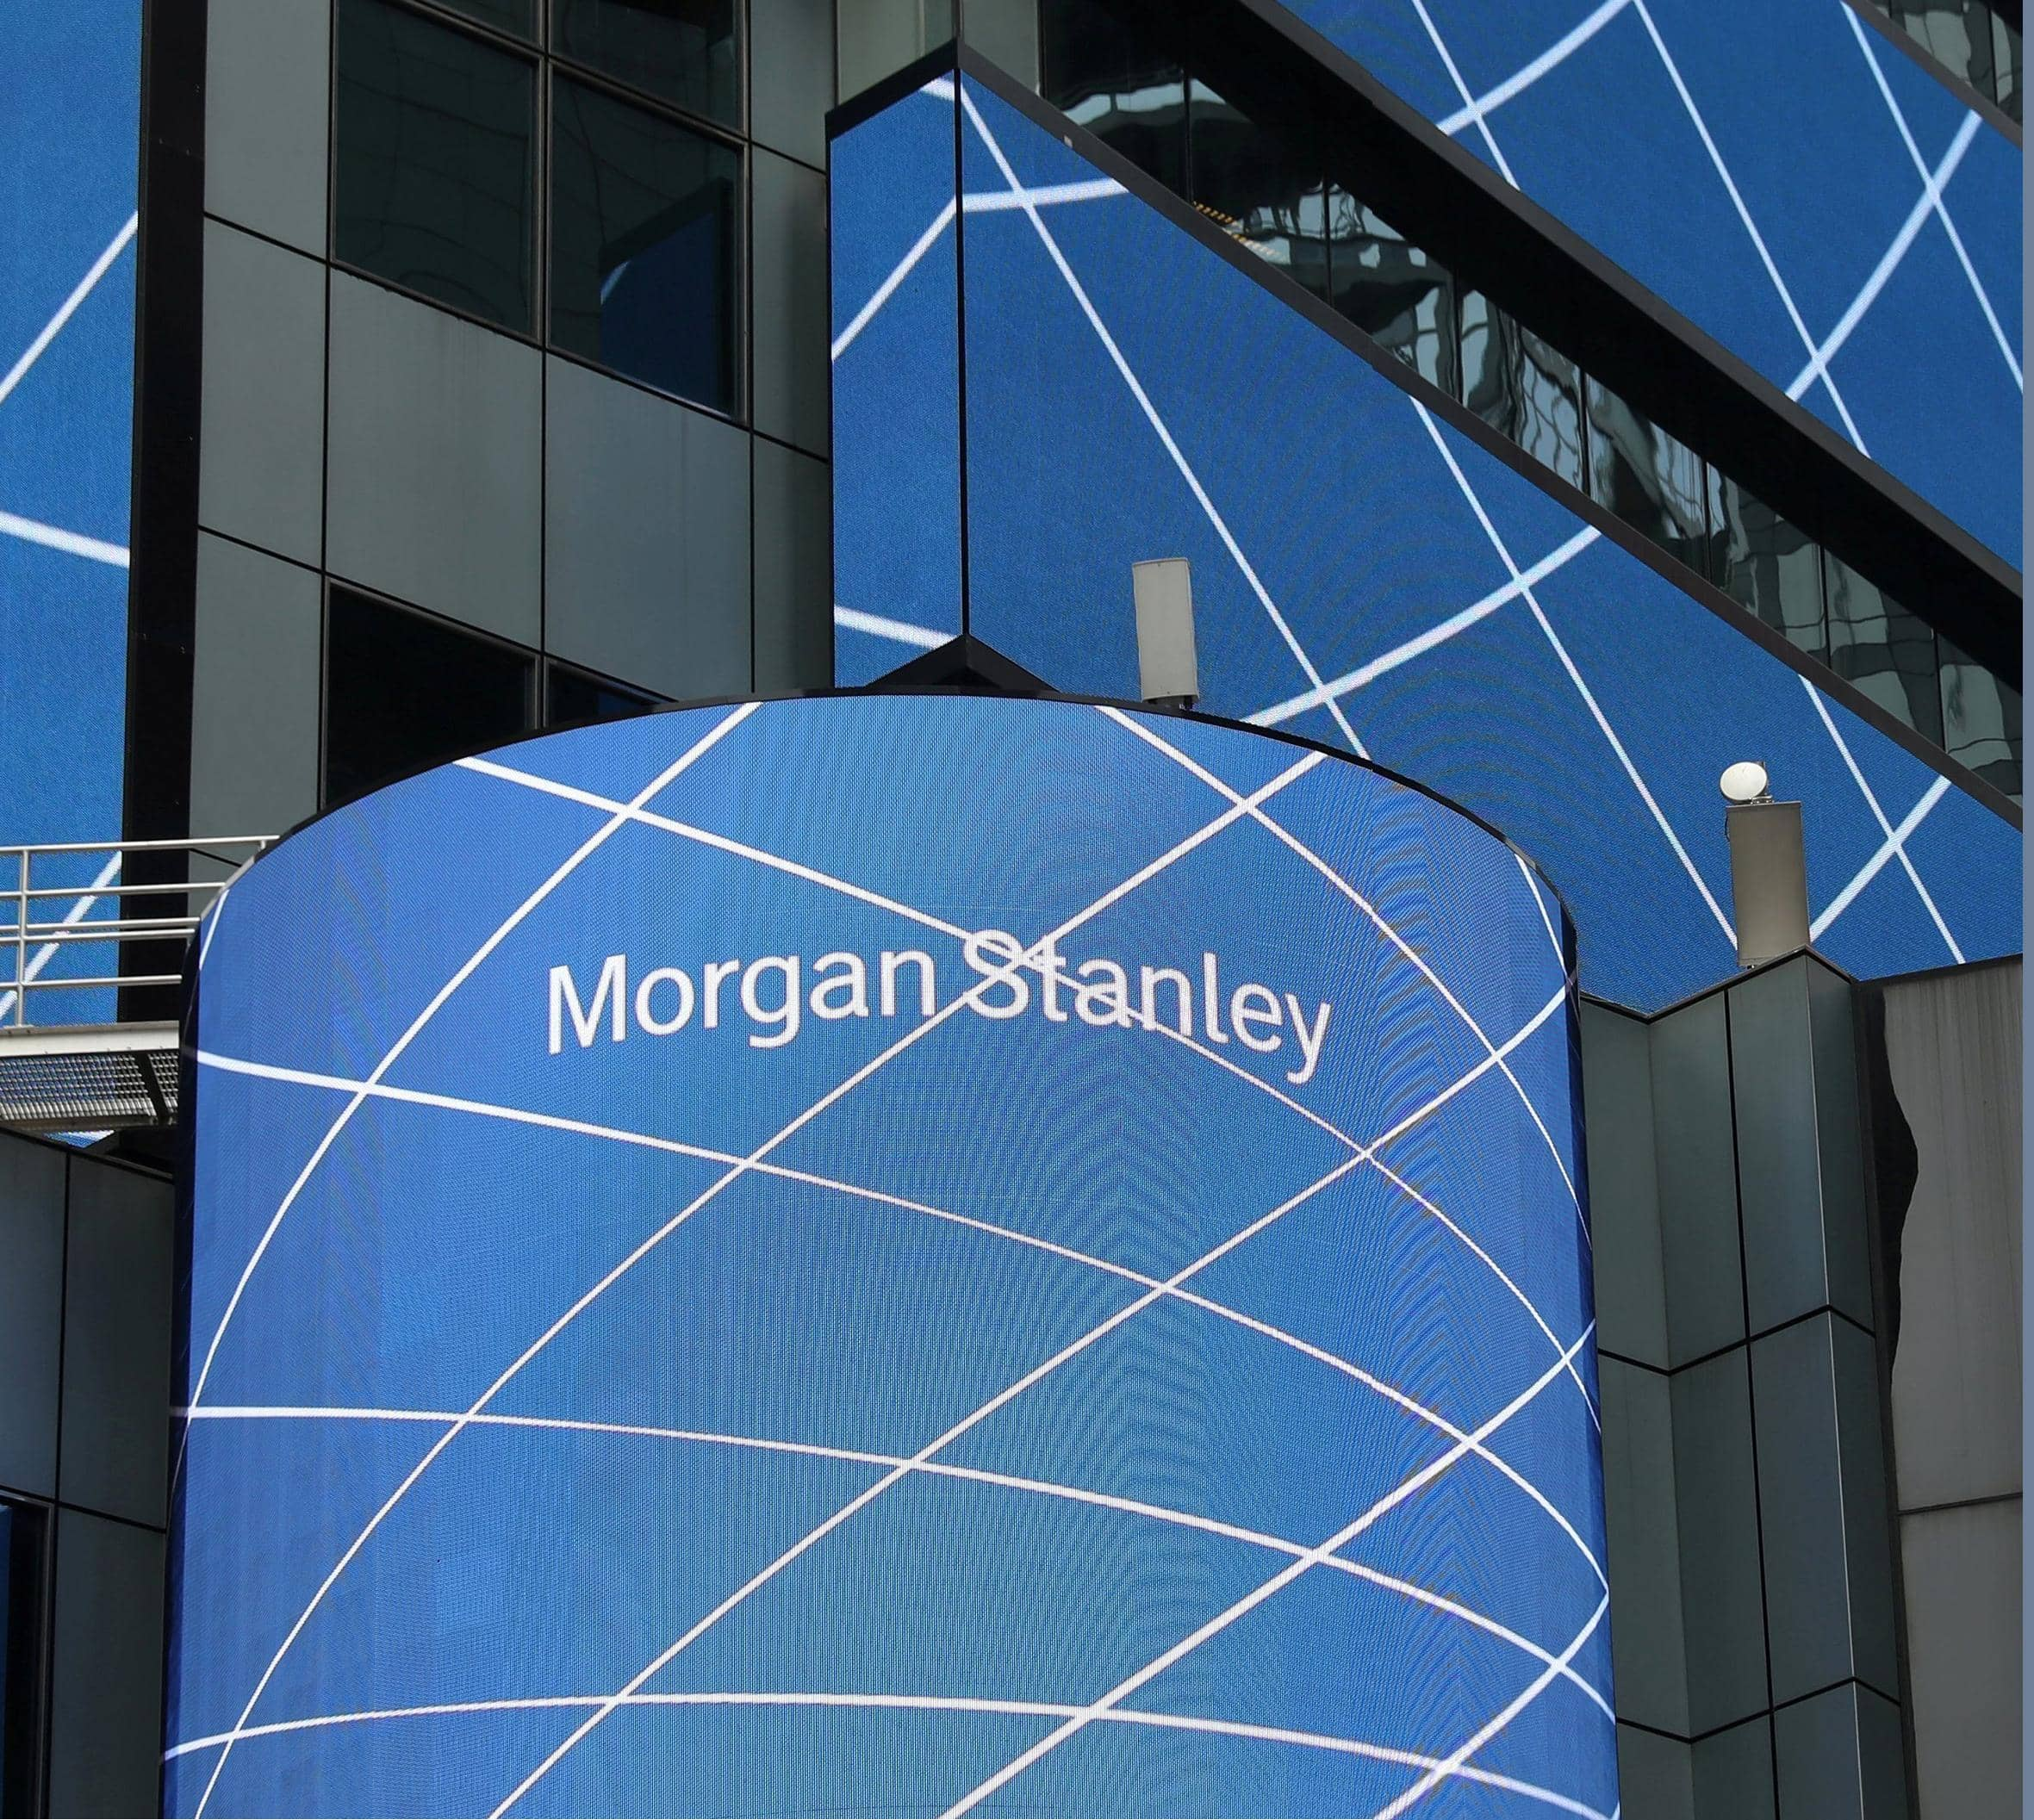 MORGAN STANLEY BUYING EATON VANCE IN DEAL VALUED AT $7B